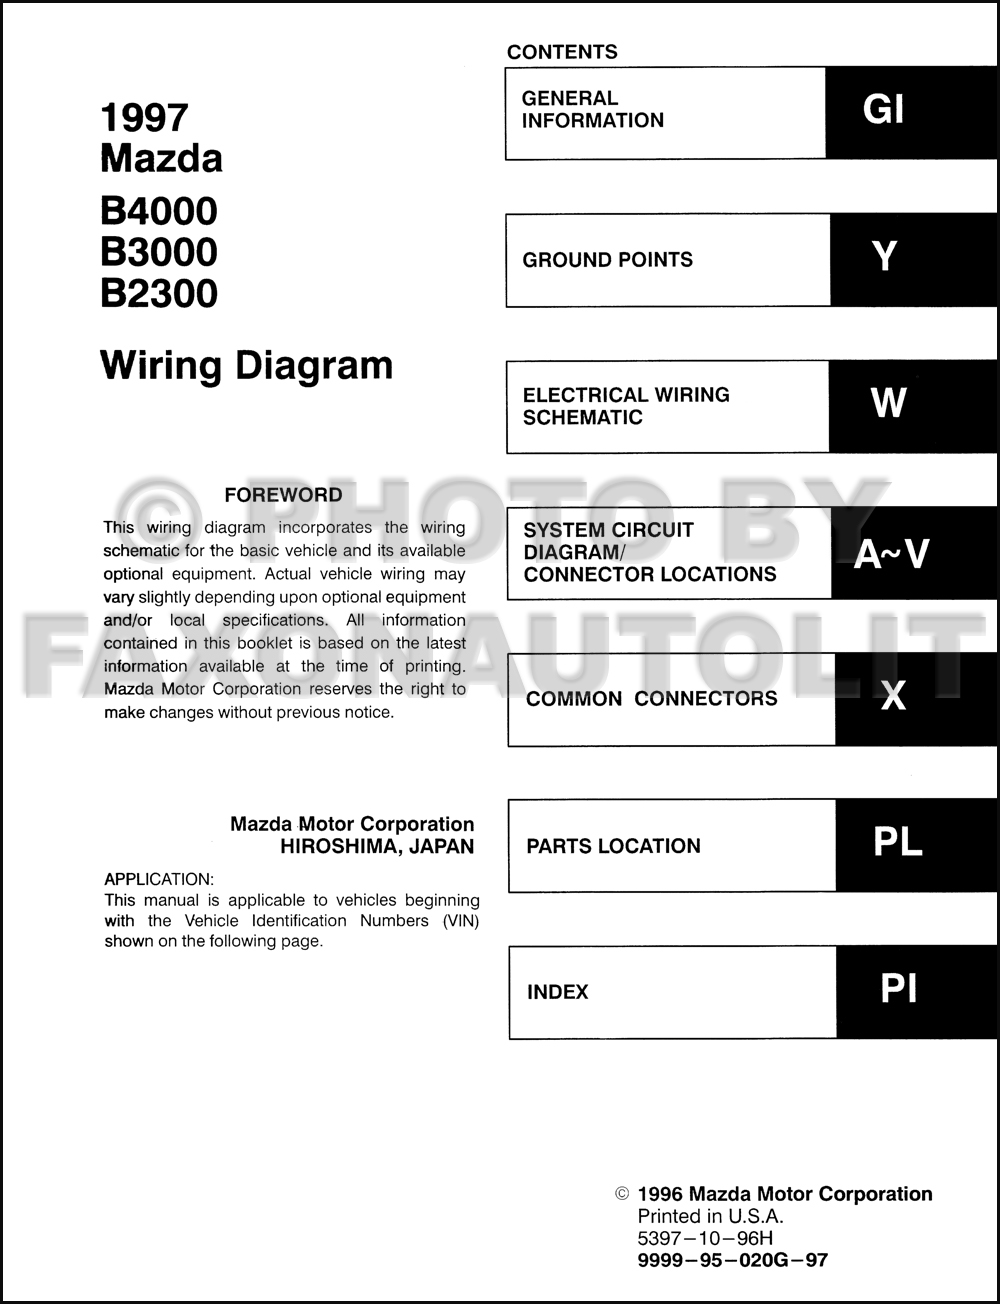 2001 Mazda B4000 Fuse Box Diagram Wiring Library 2002 Saturn Vue Schematic 1997 B2300 Diy Diagrams U2022 Millenia Engine